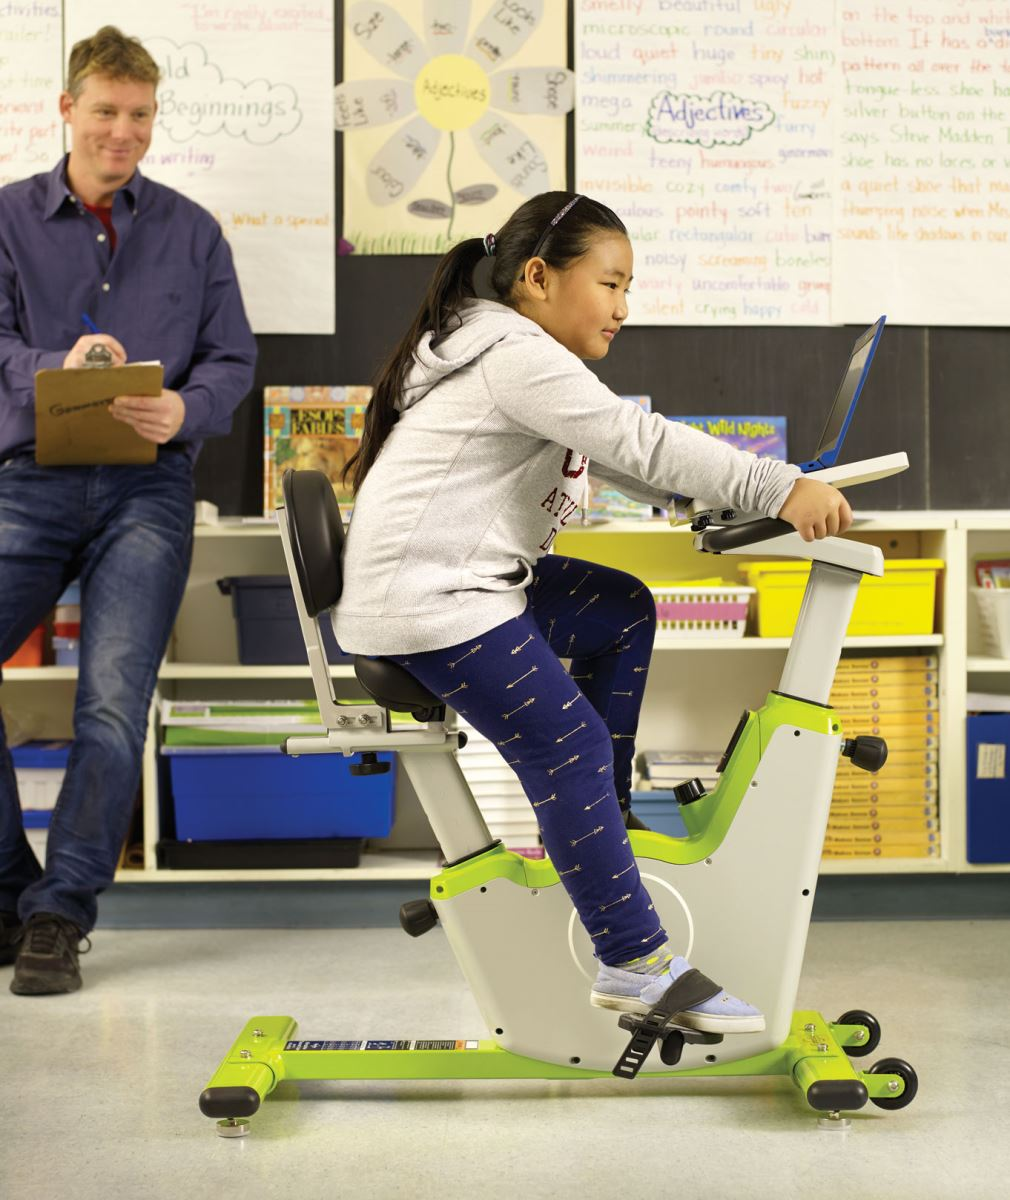 Self-regulation Classroom Cruiser stationary bike for kids